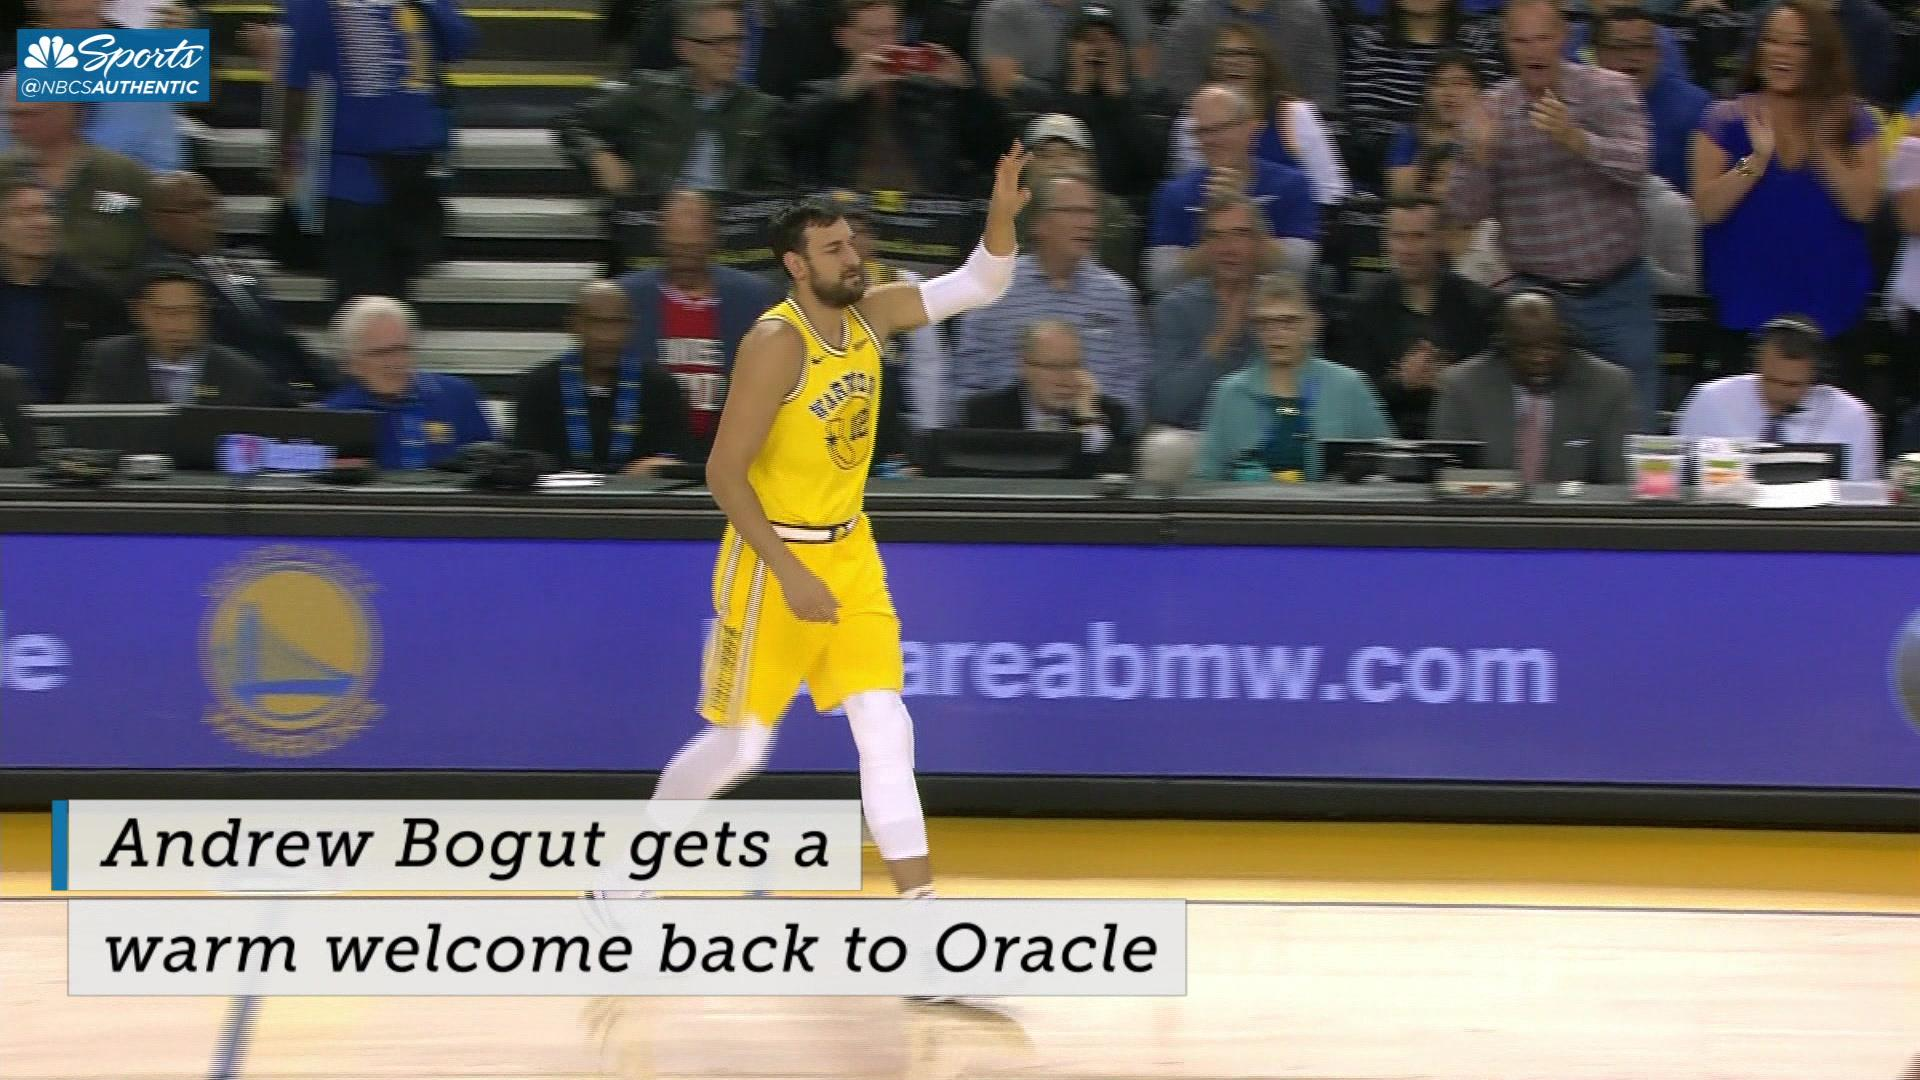 Andrew Bogut gets a warm welcome in first game back at Oracle